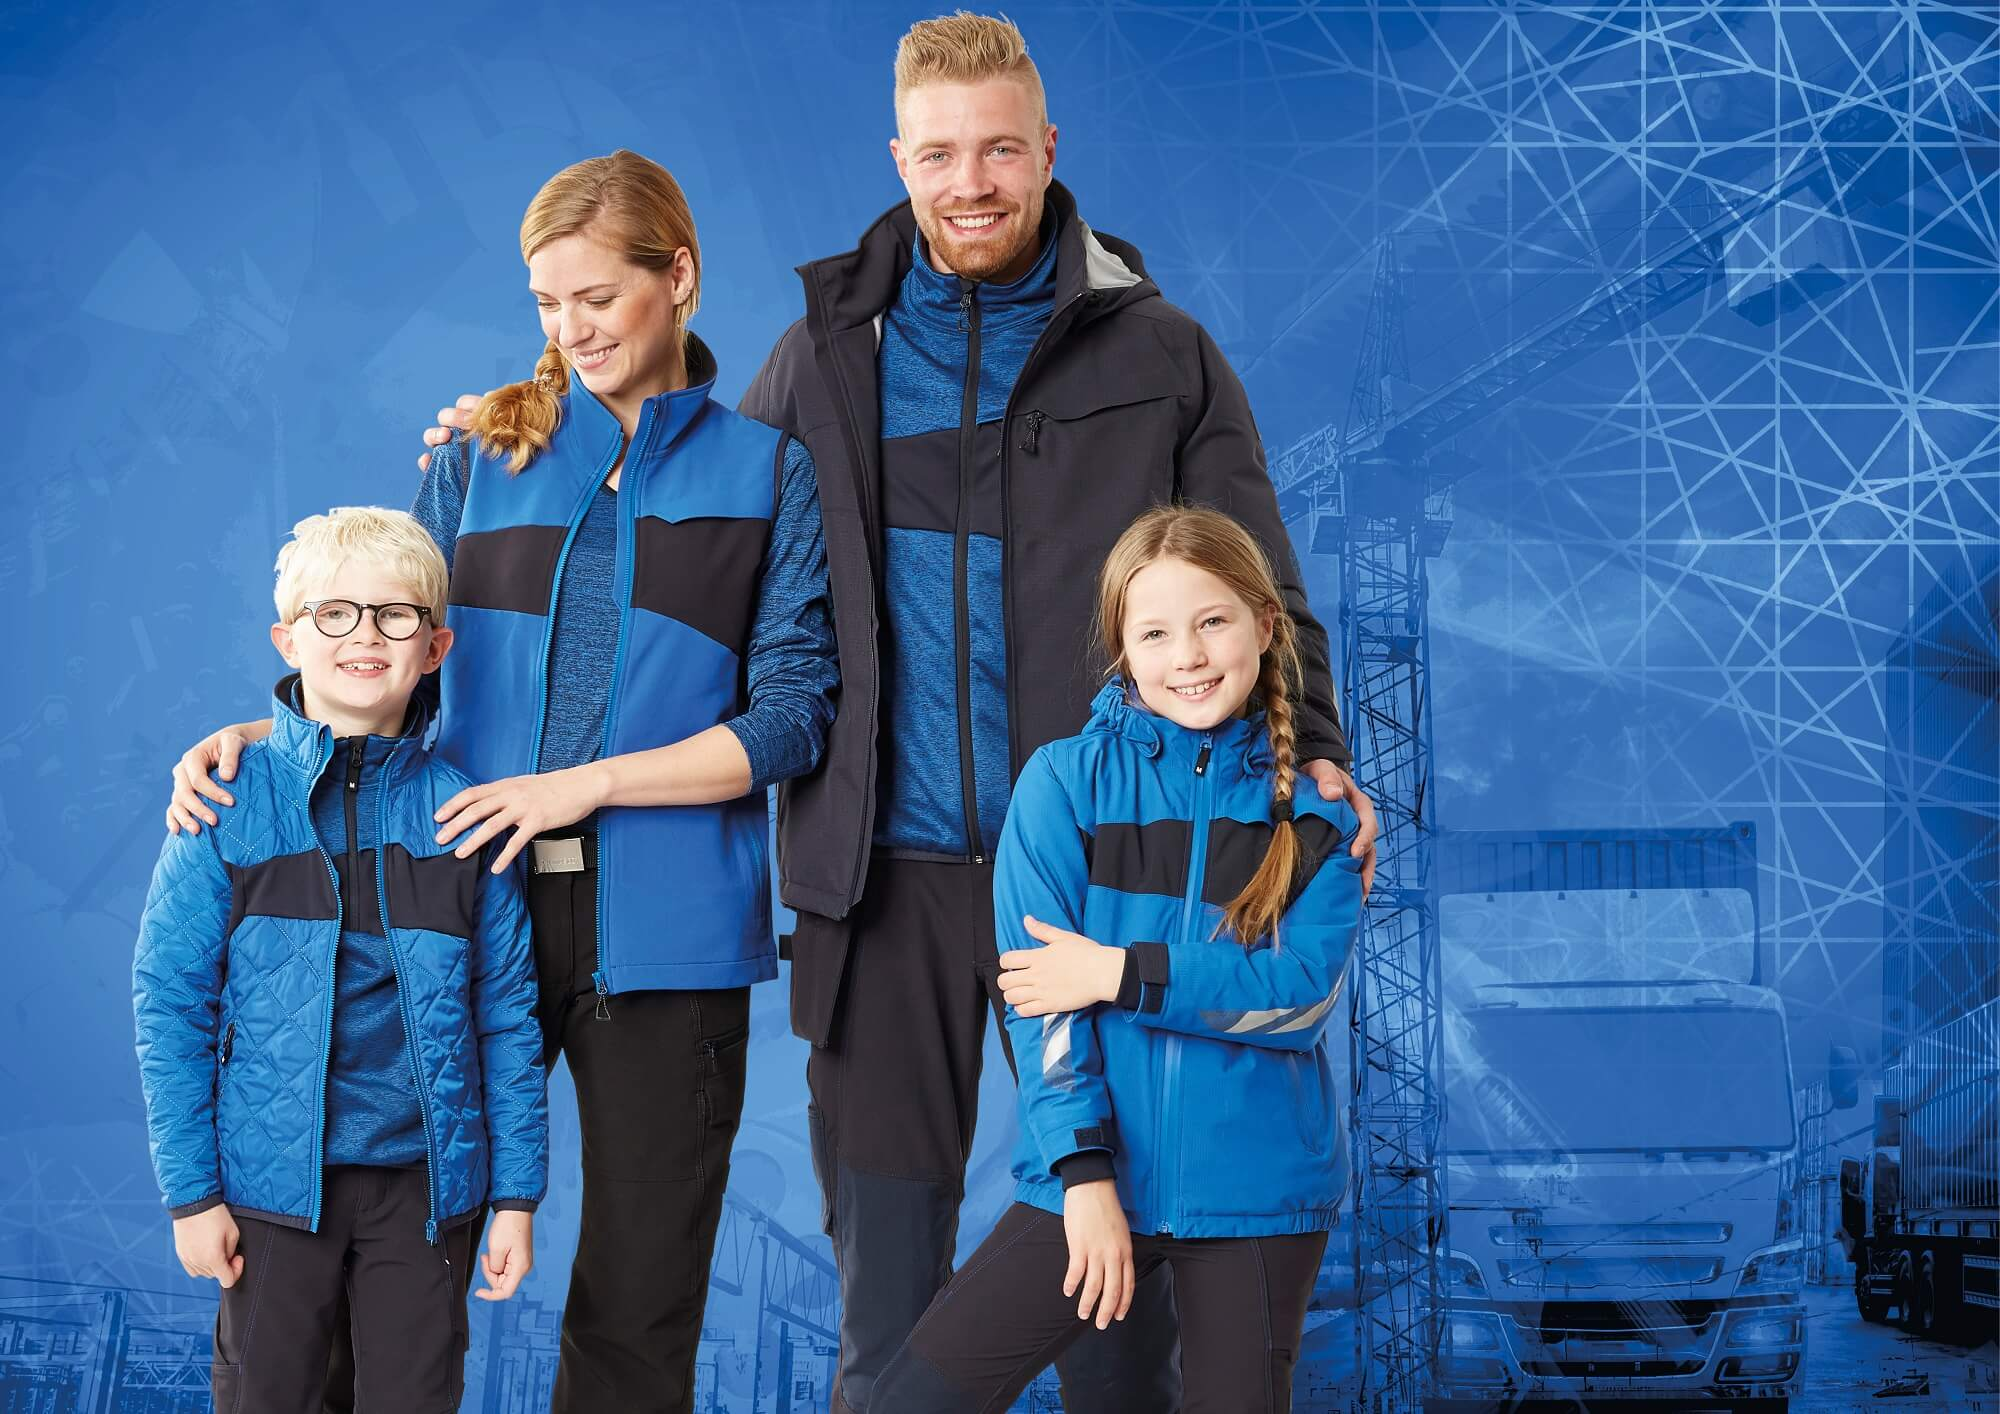 MASCOT® ACCELERATE Ropas - Azul real - Mujer, Hombre & Niños